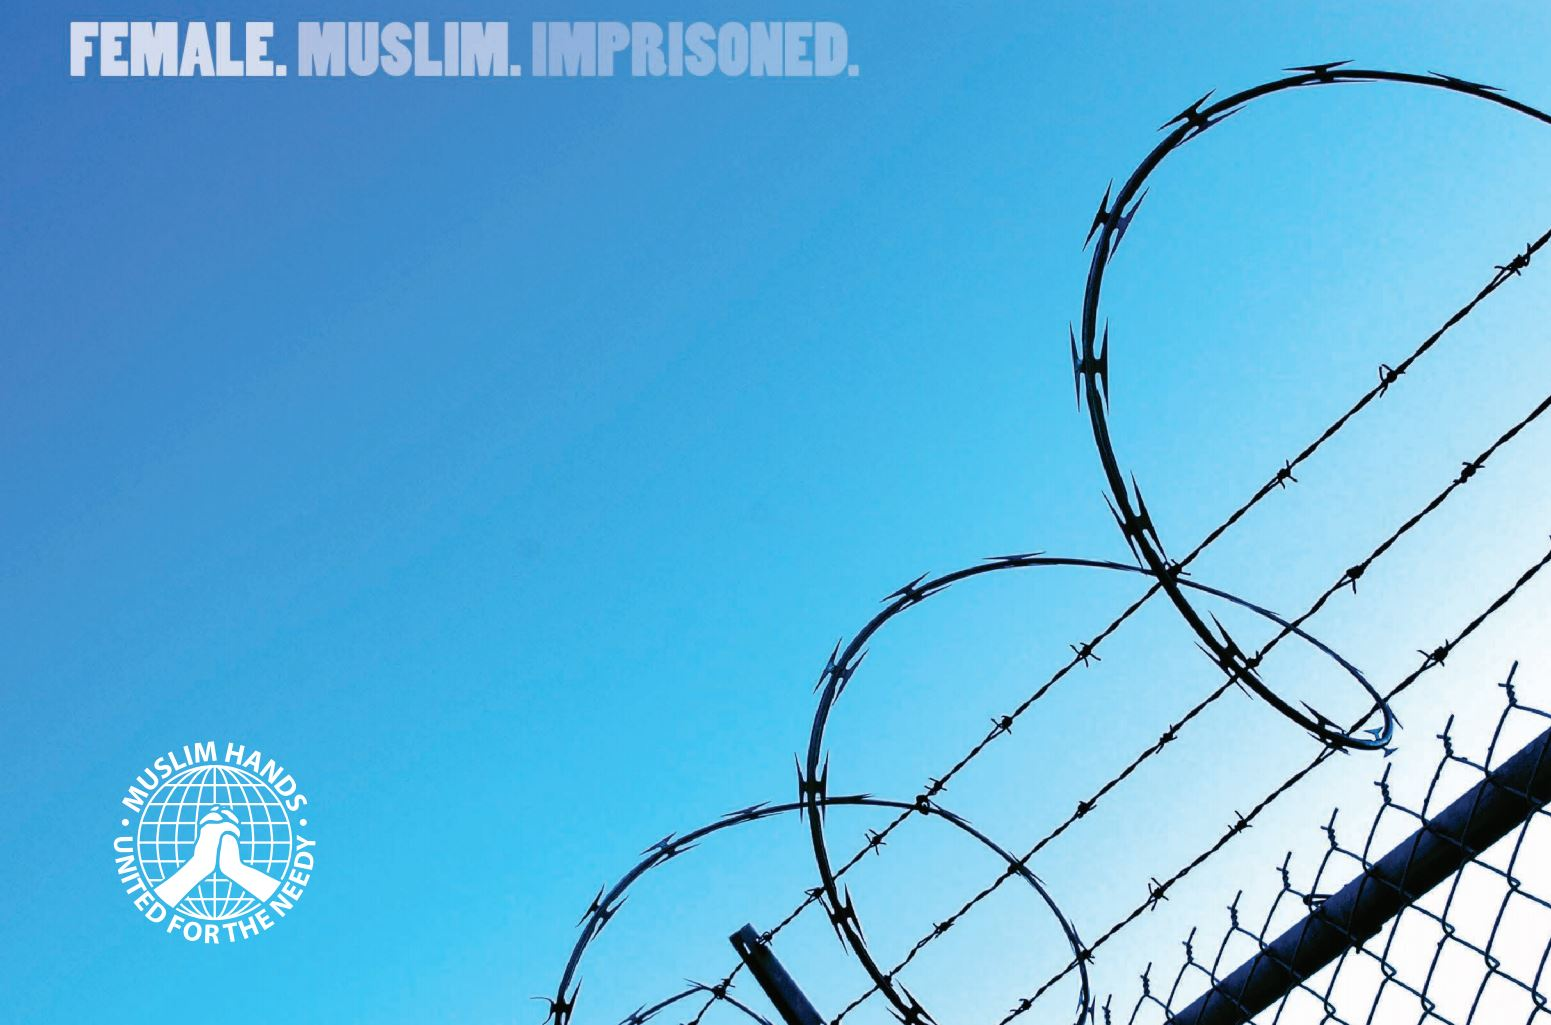 The experiences of female Muslim prisoners